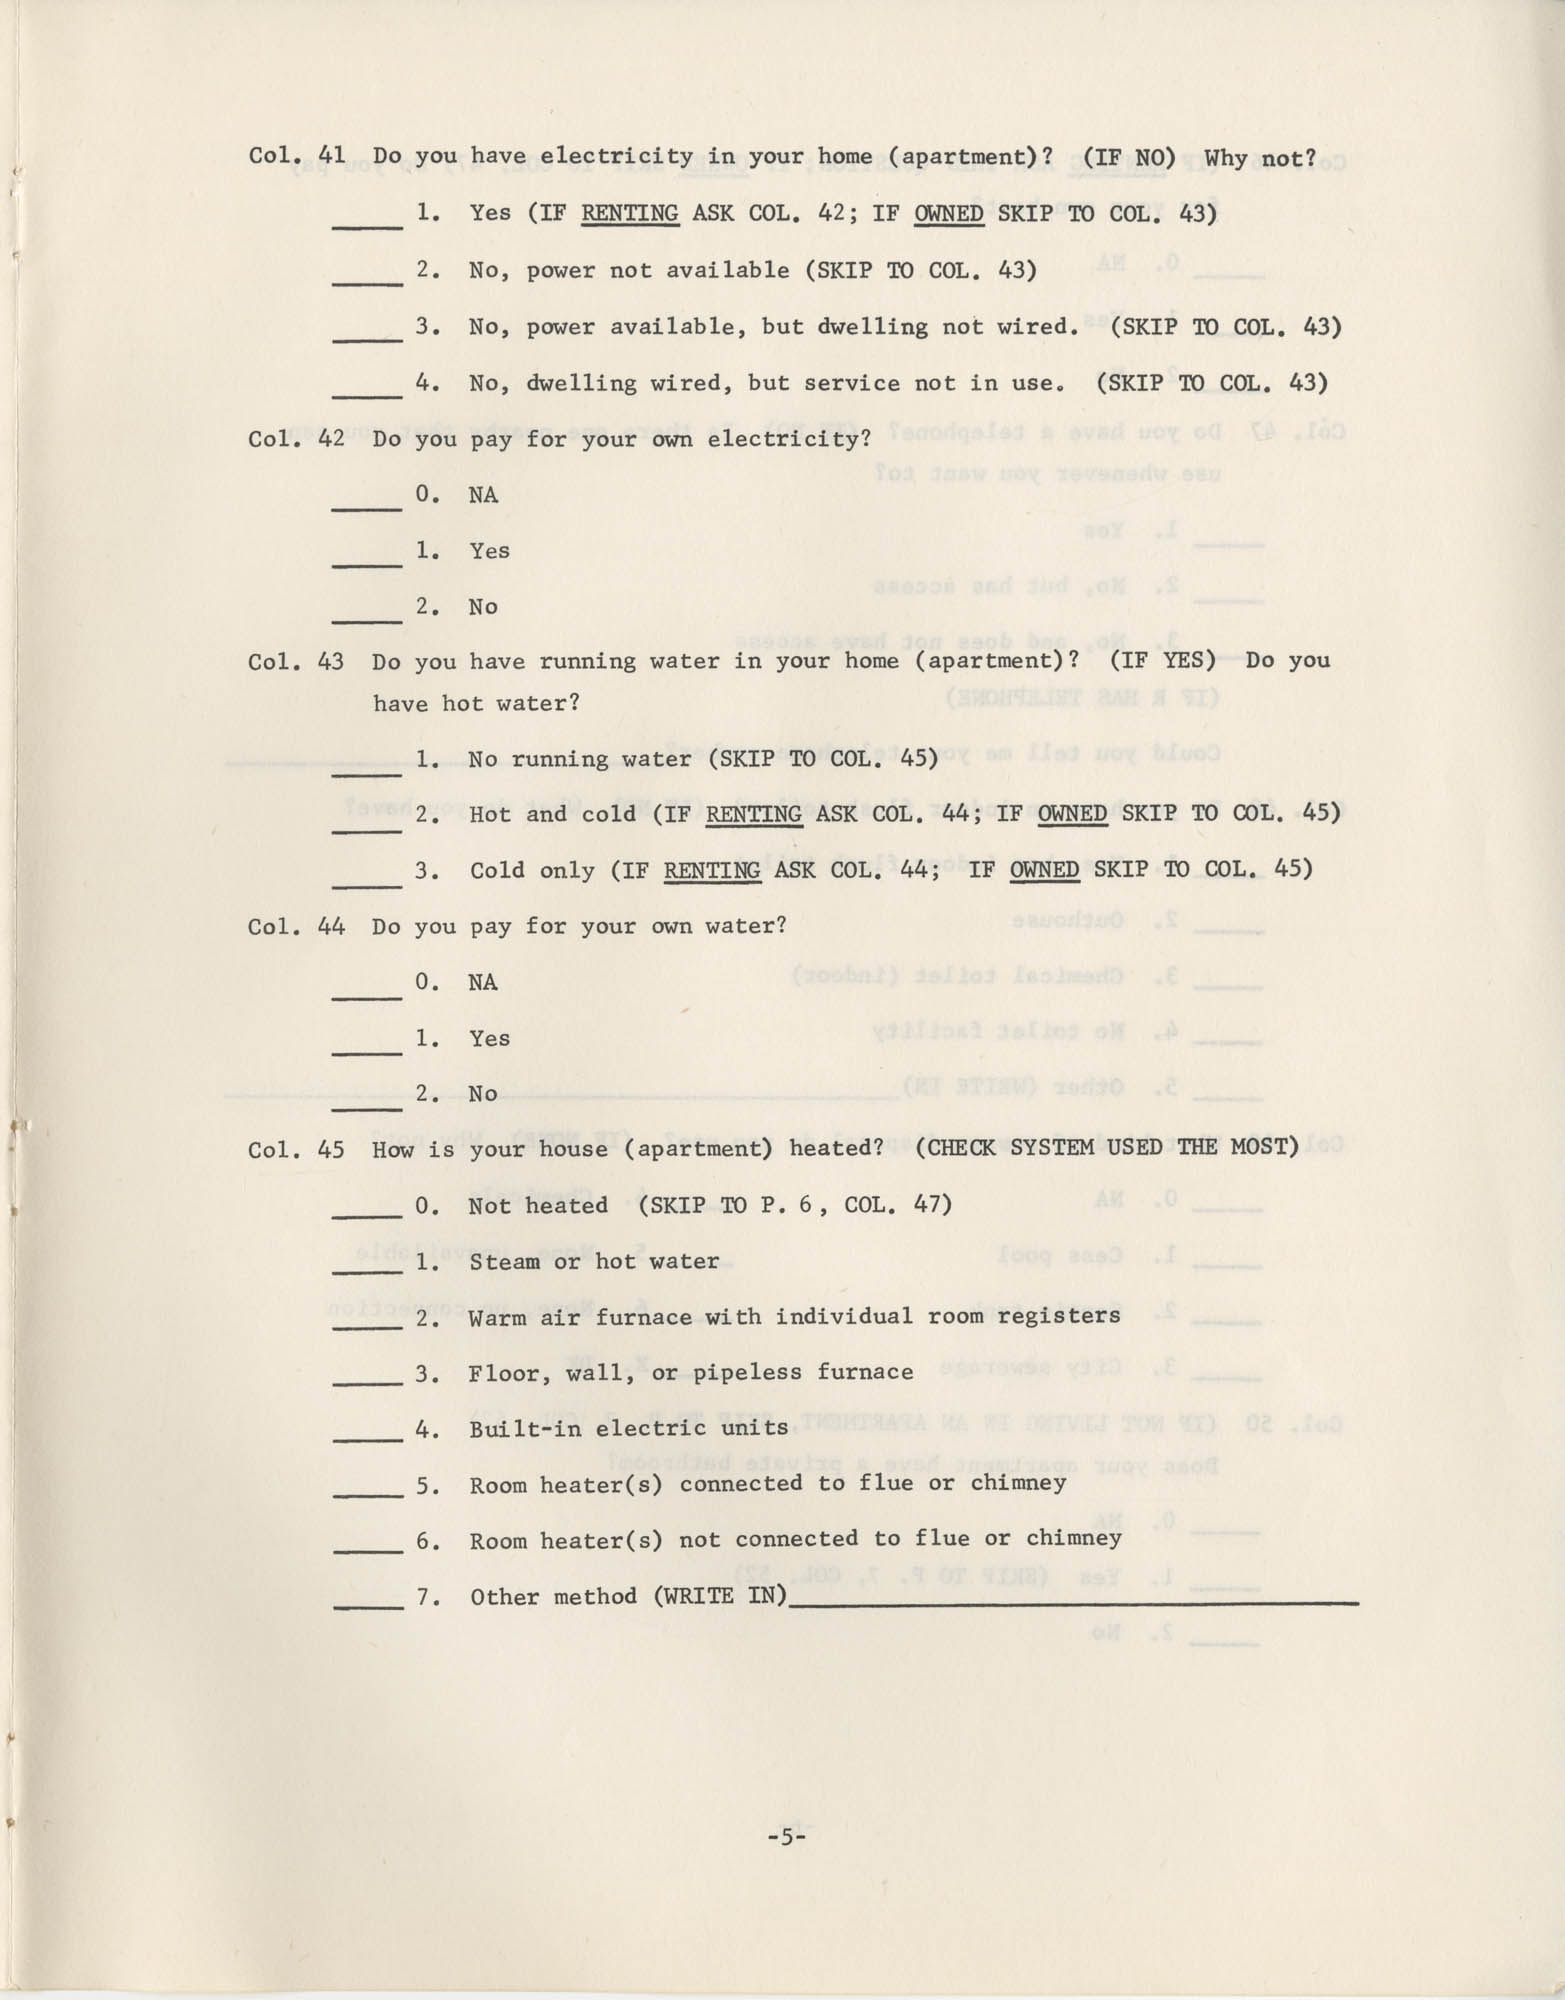 Household Questionnaire, Page 5